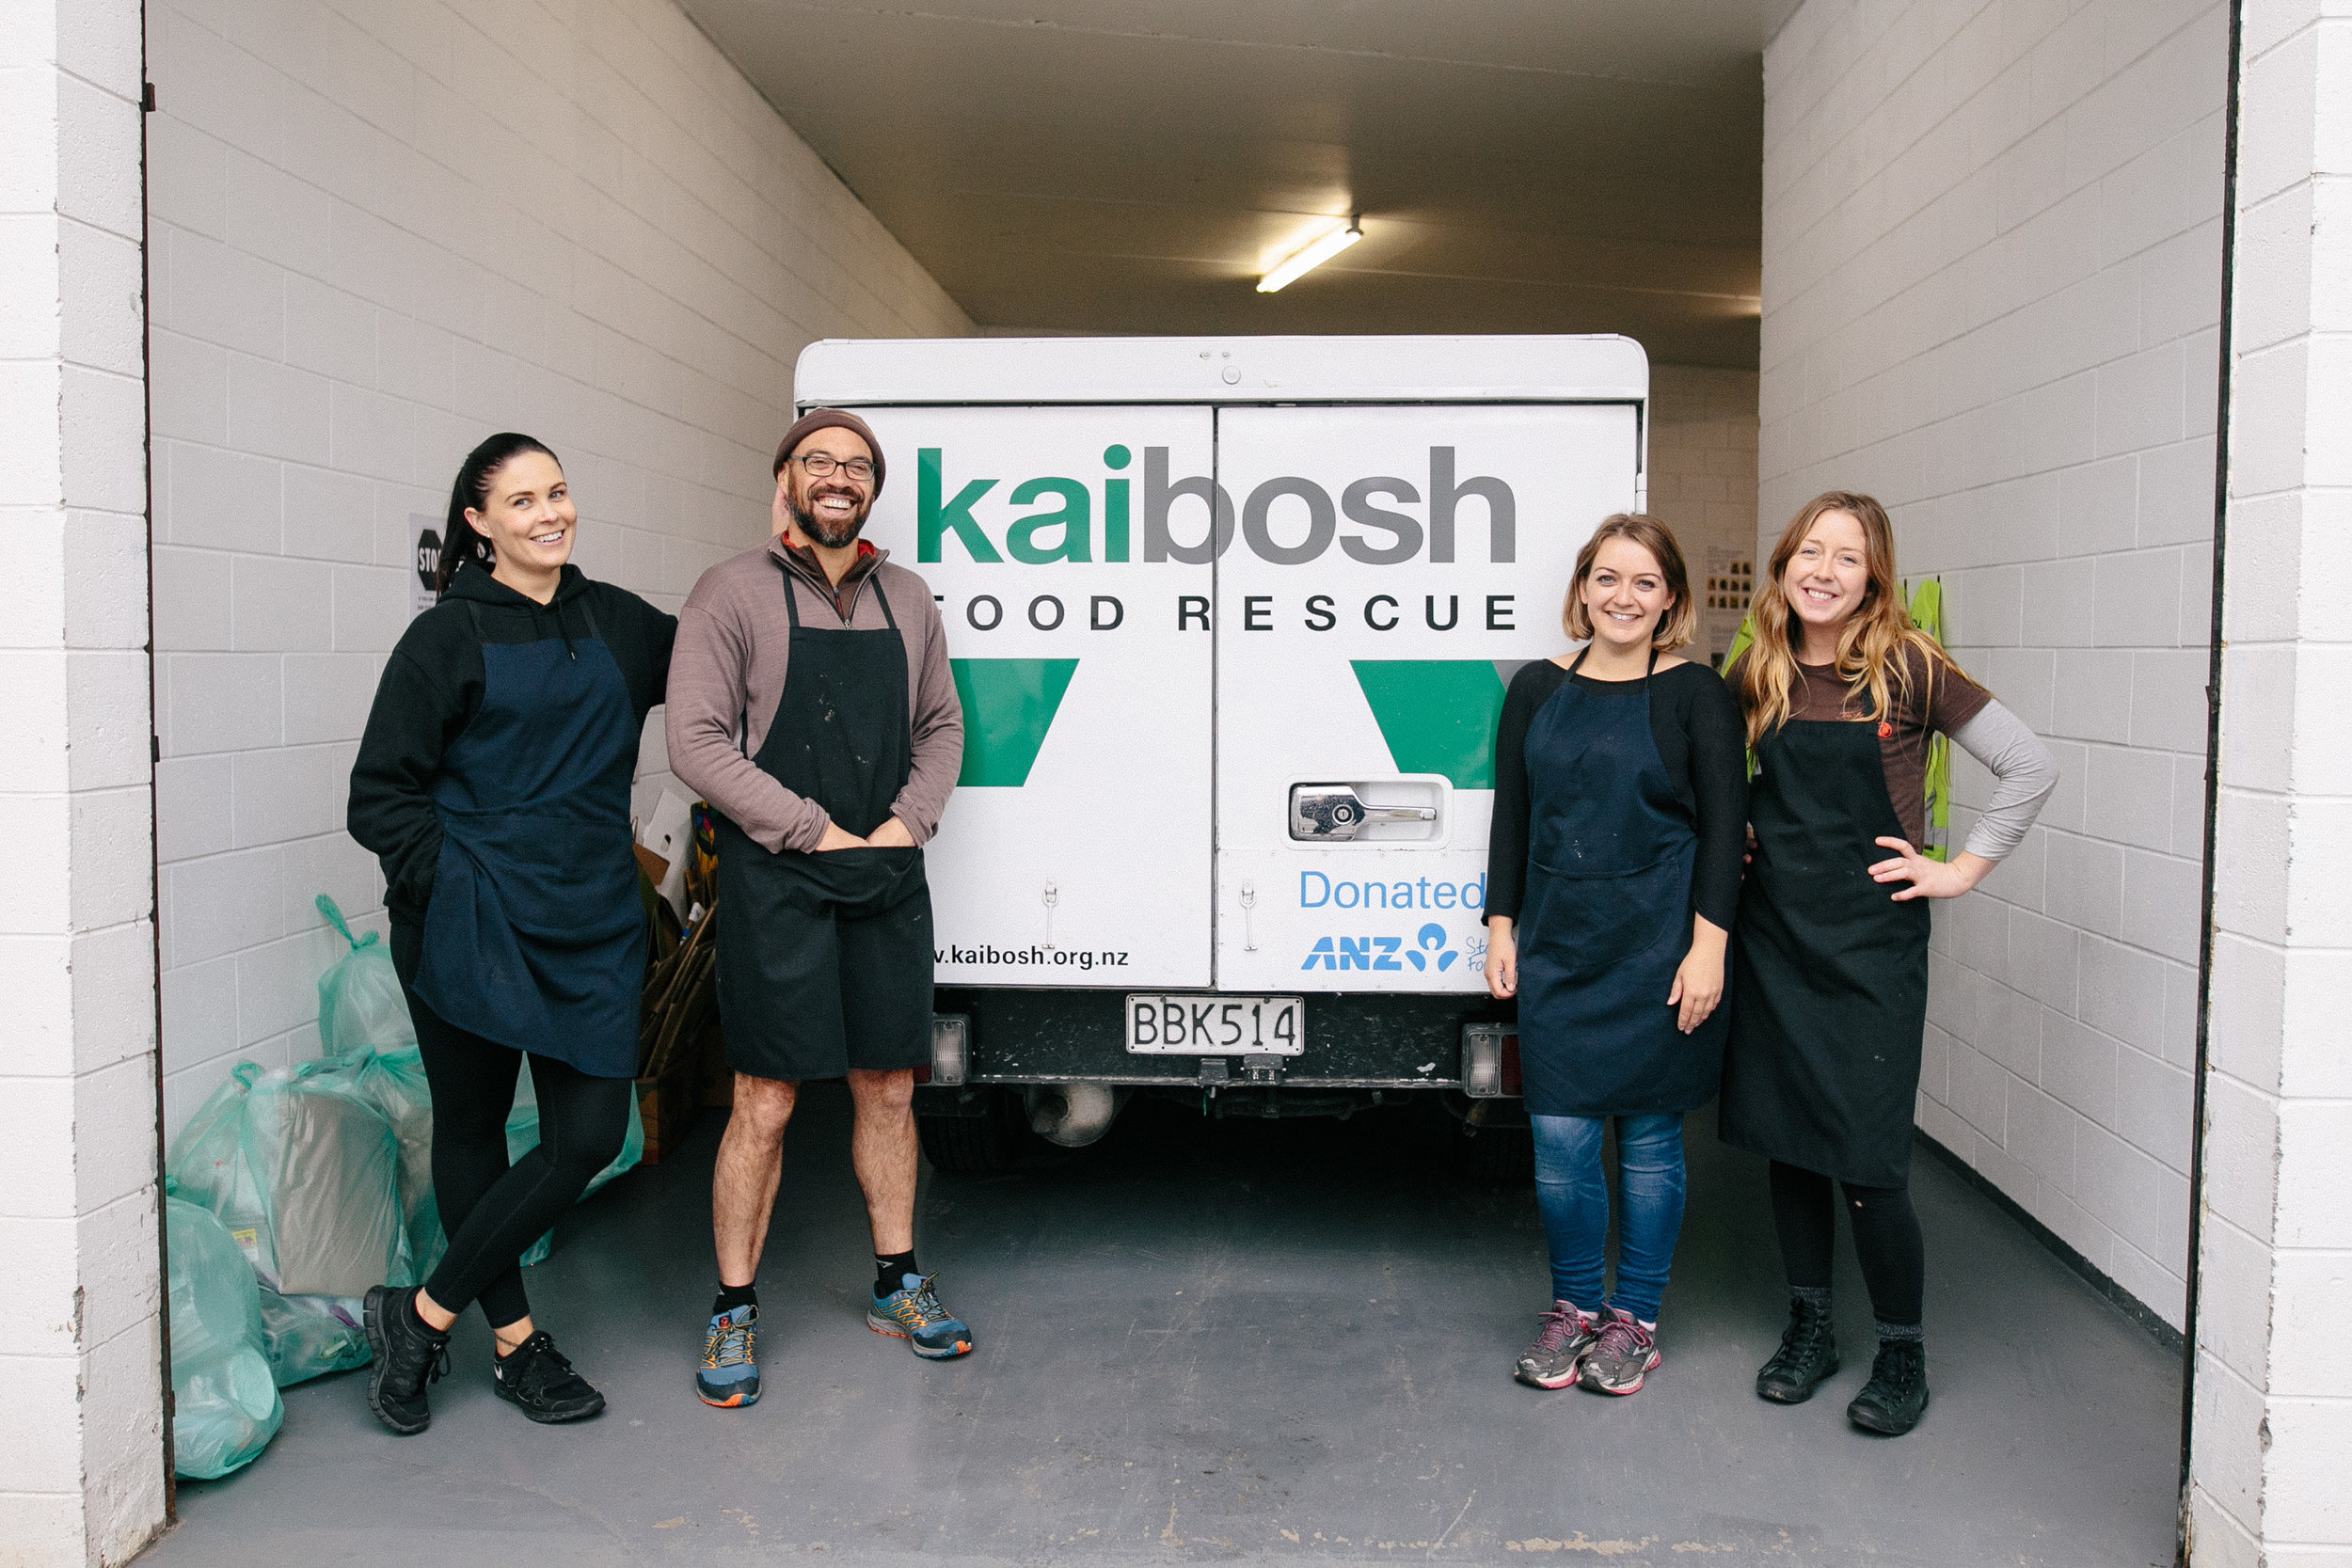 (From left): Hayley Osborne, Marty Andrews, Natalie Verner and Dee Corcoran wind up for the day after another very busy Kaibosh shift